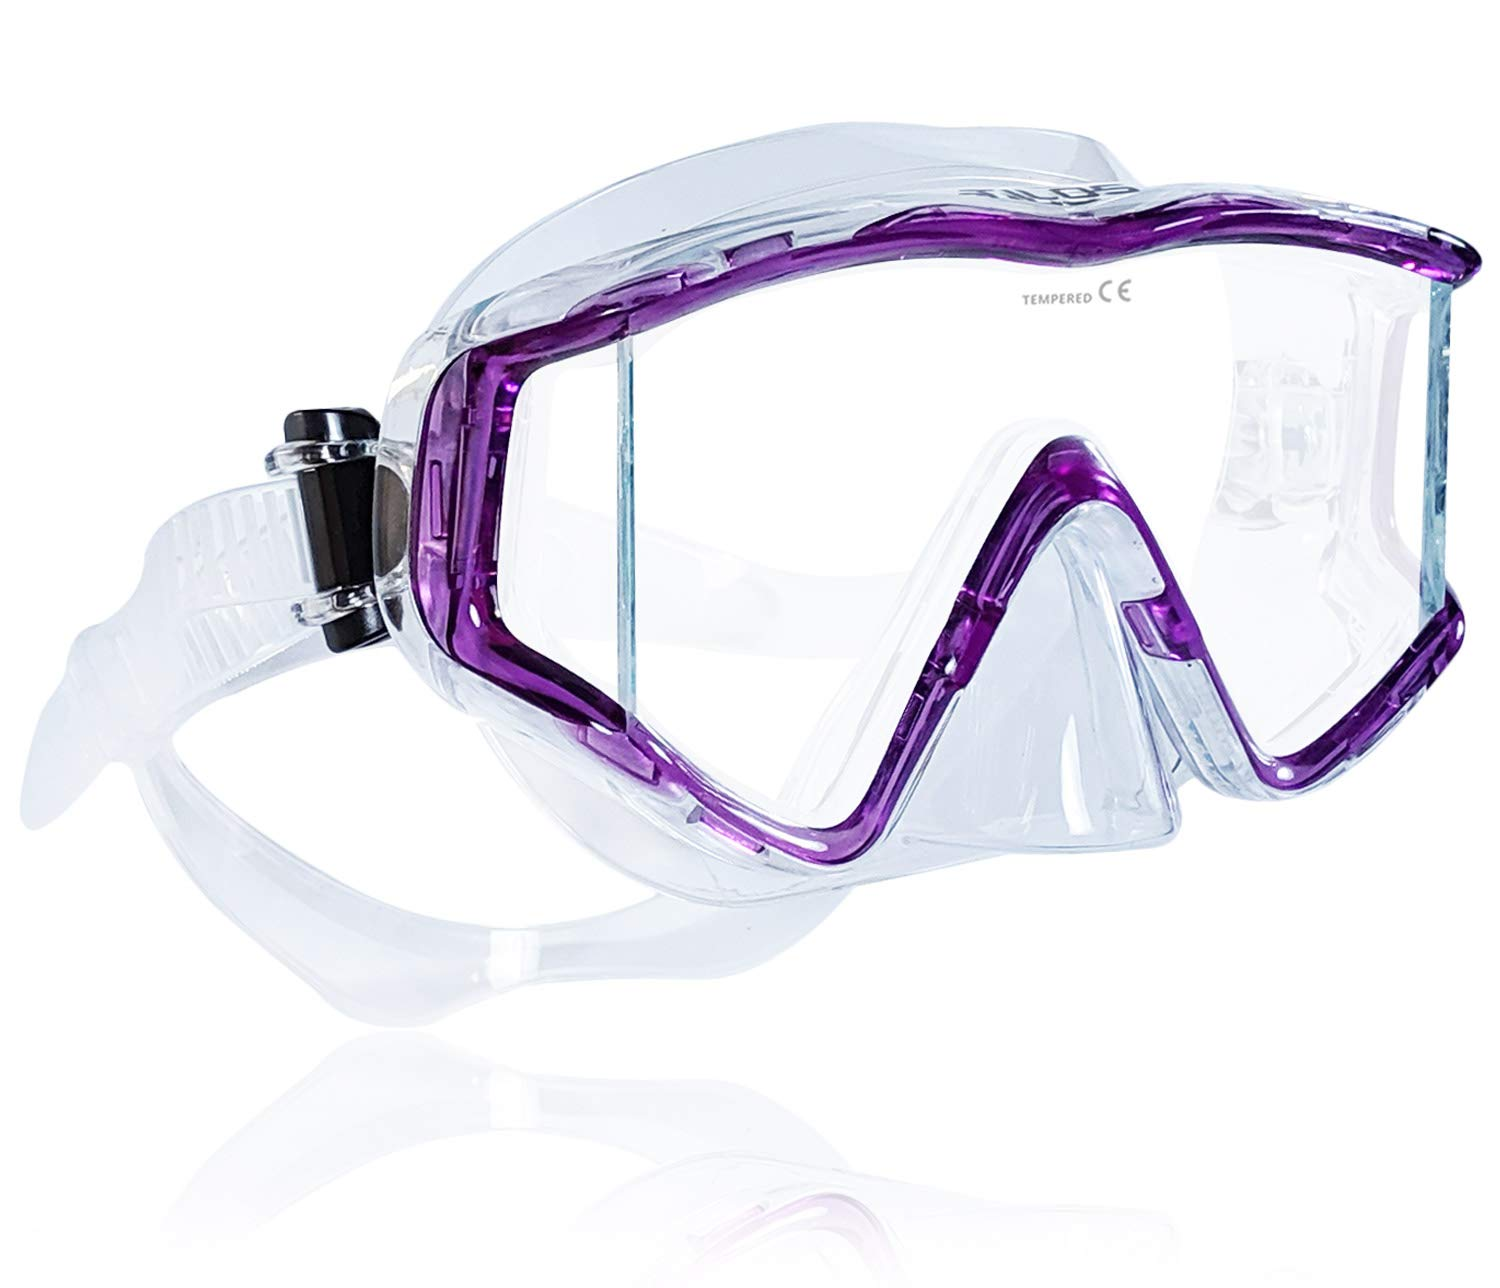 Tilos Single Lens Panoramic SG Large Wide View Mask for Scuba Diving, Snorkeling & Freediving (Purple) by Tilos